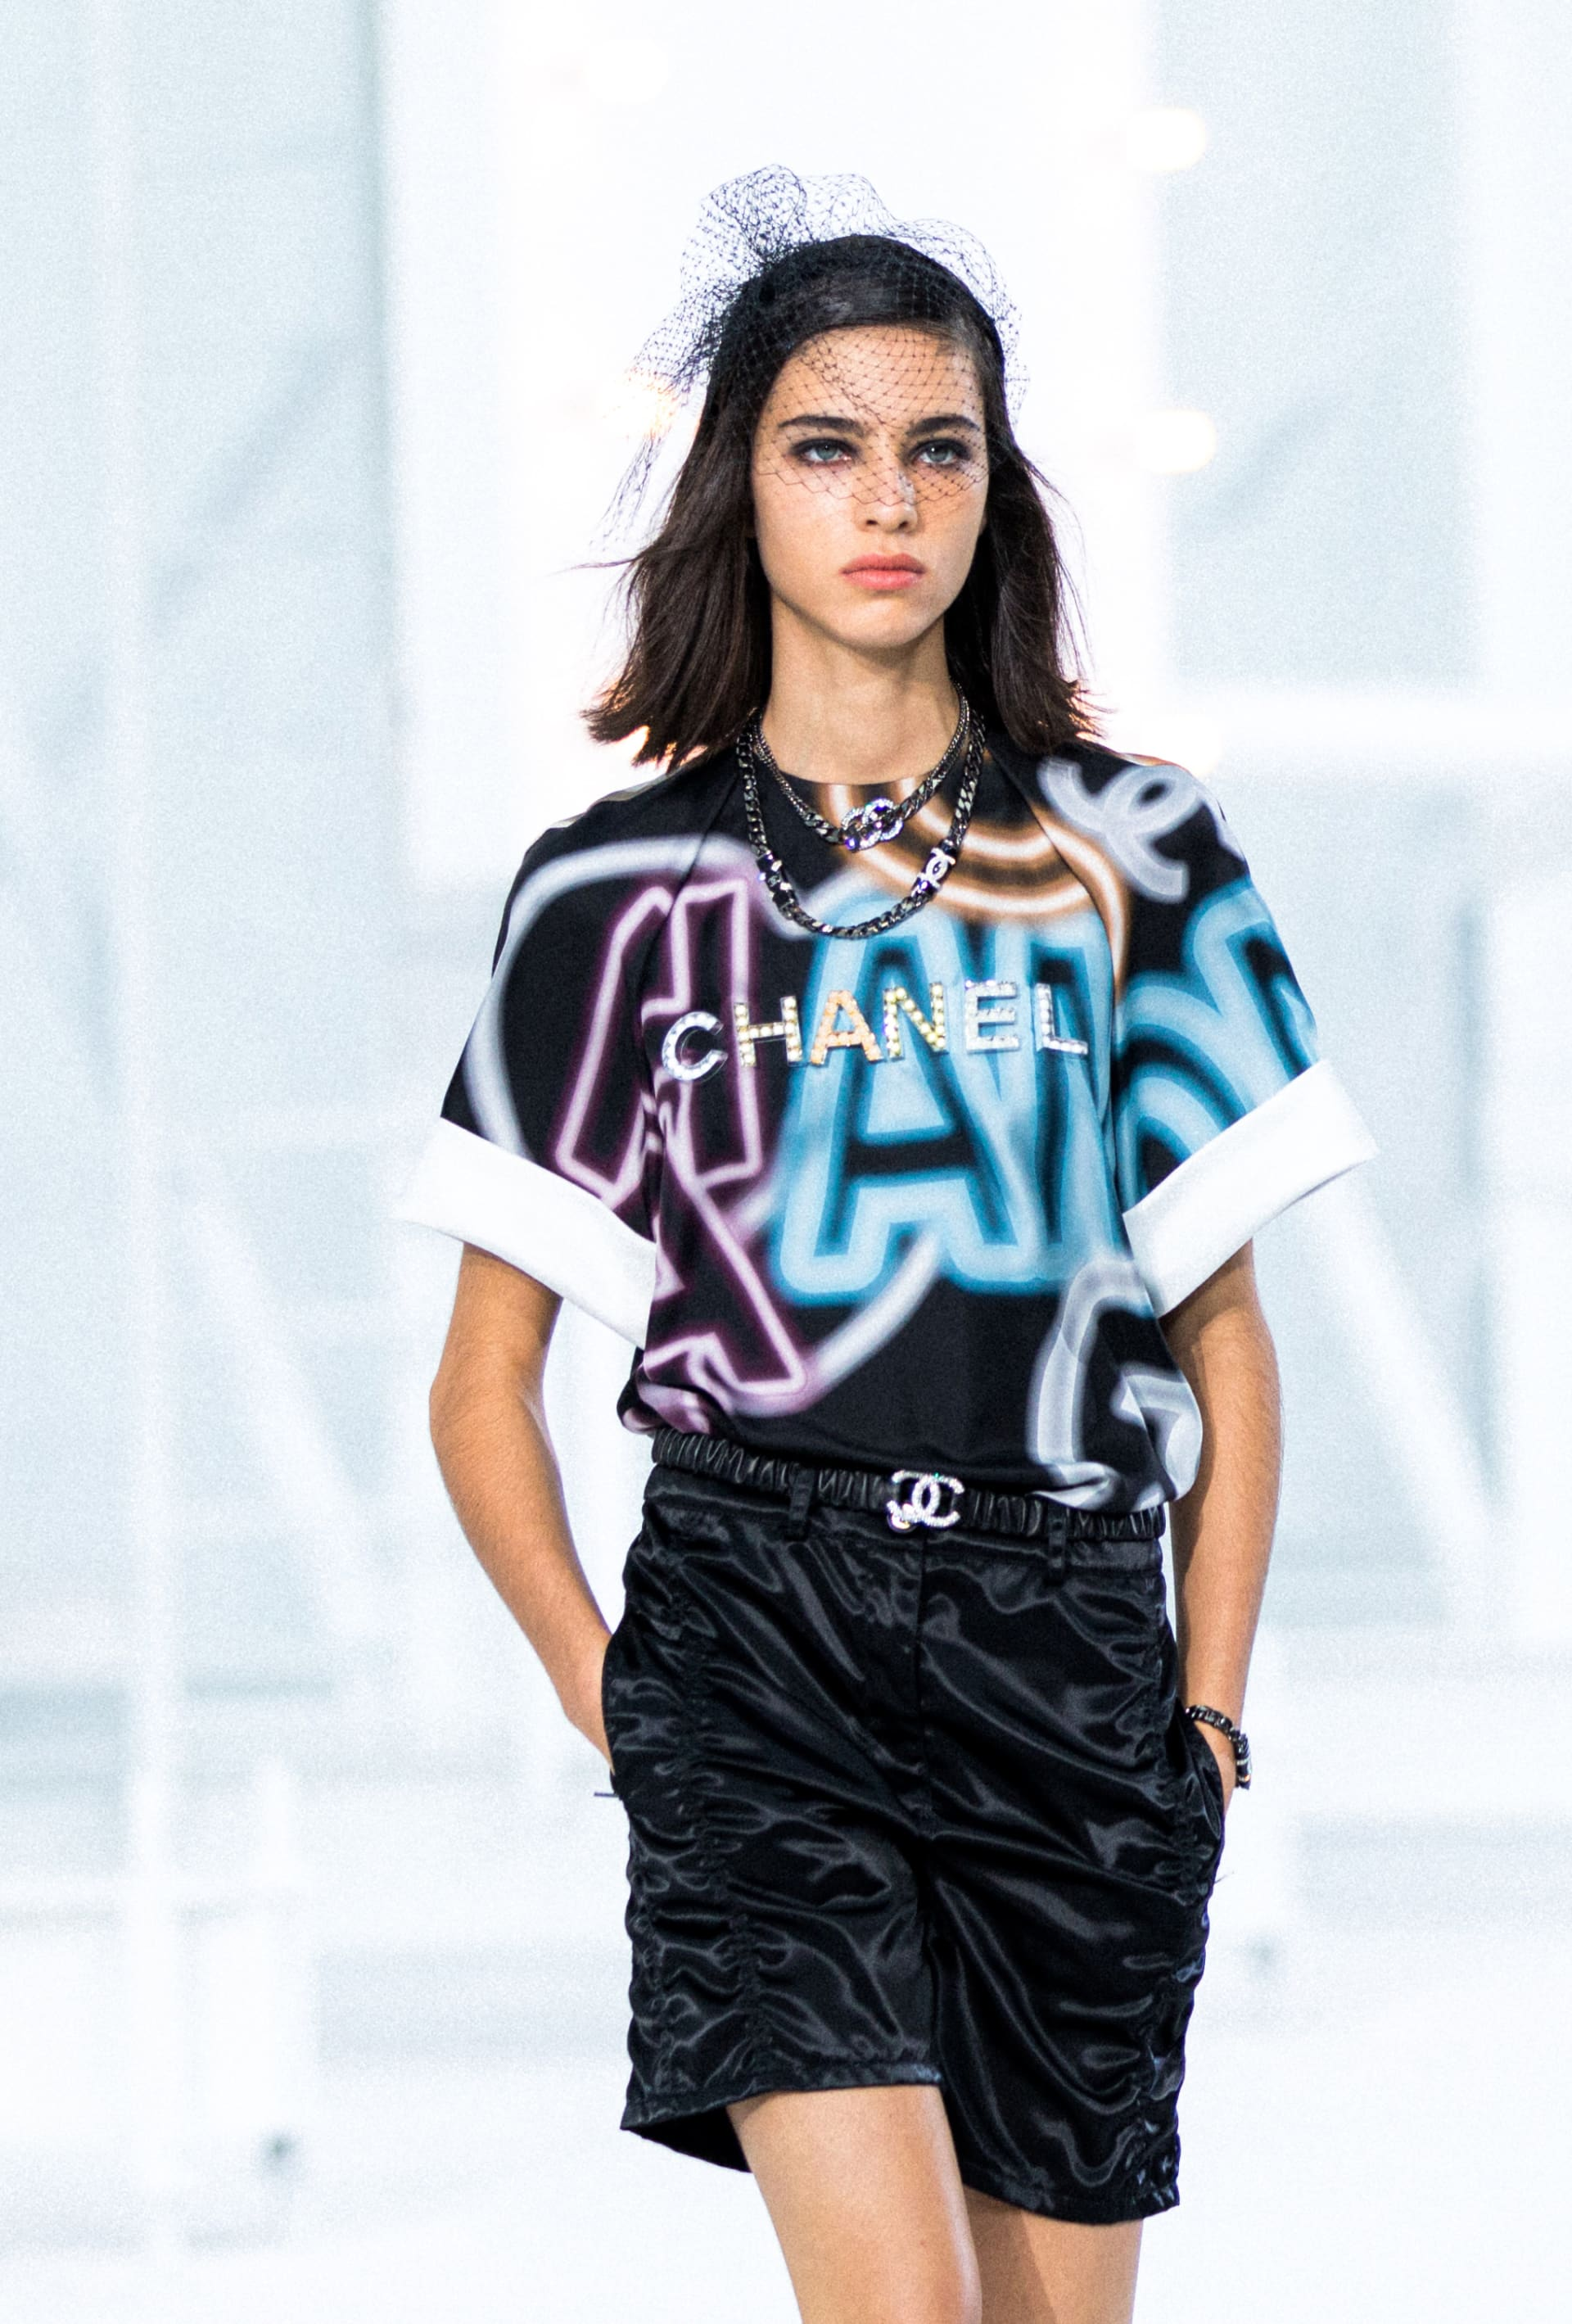 View 2 - Look 32 - Spring-Summer 2021 - see full sized version